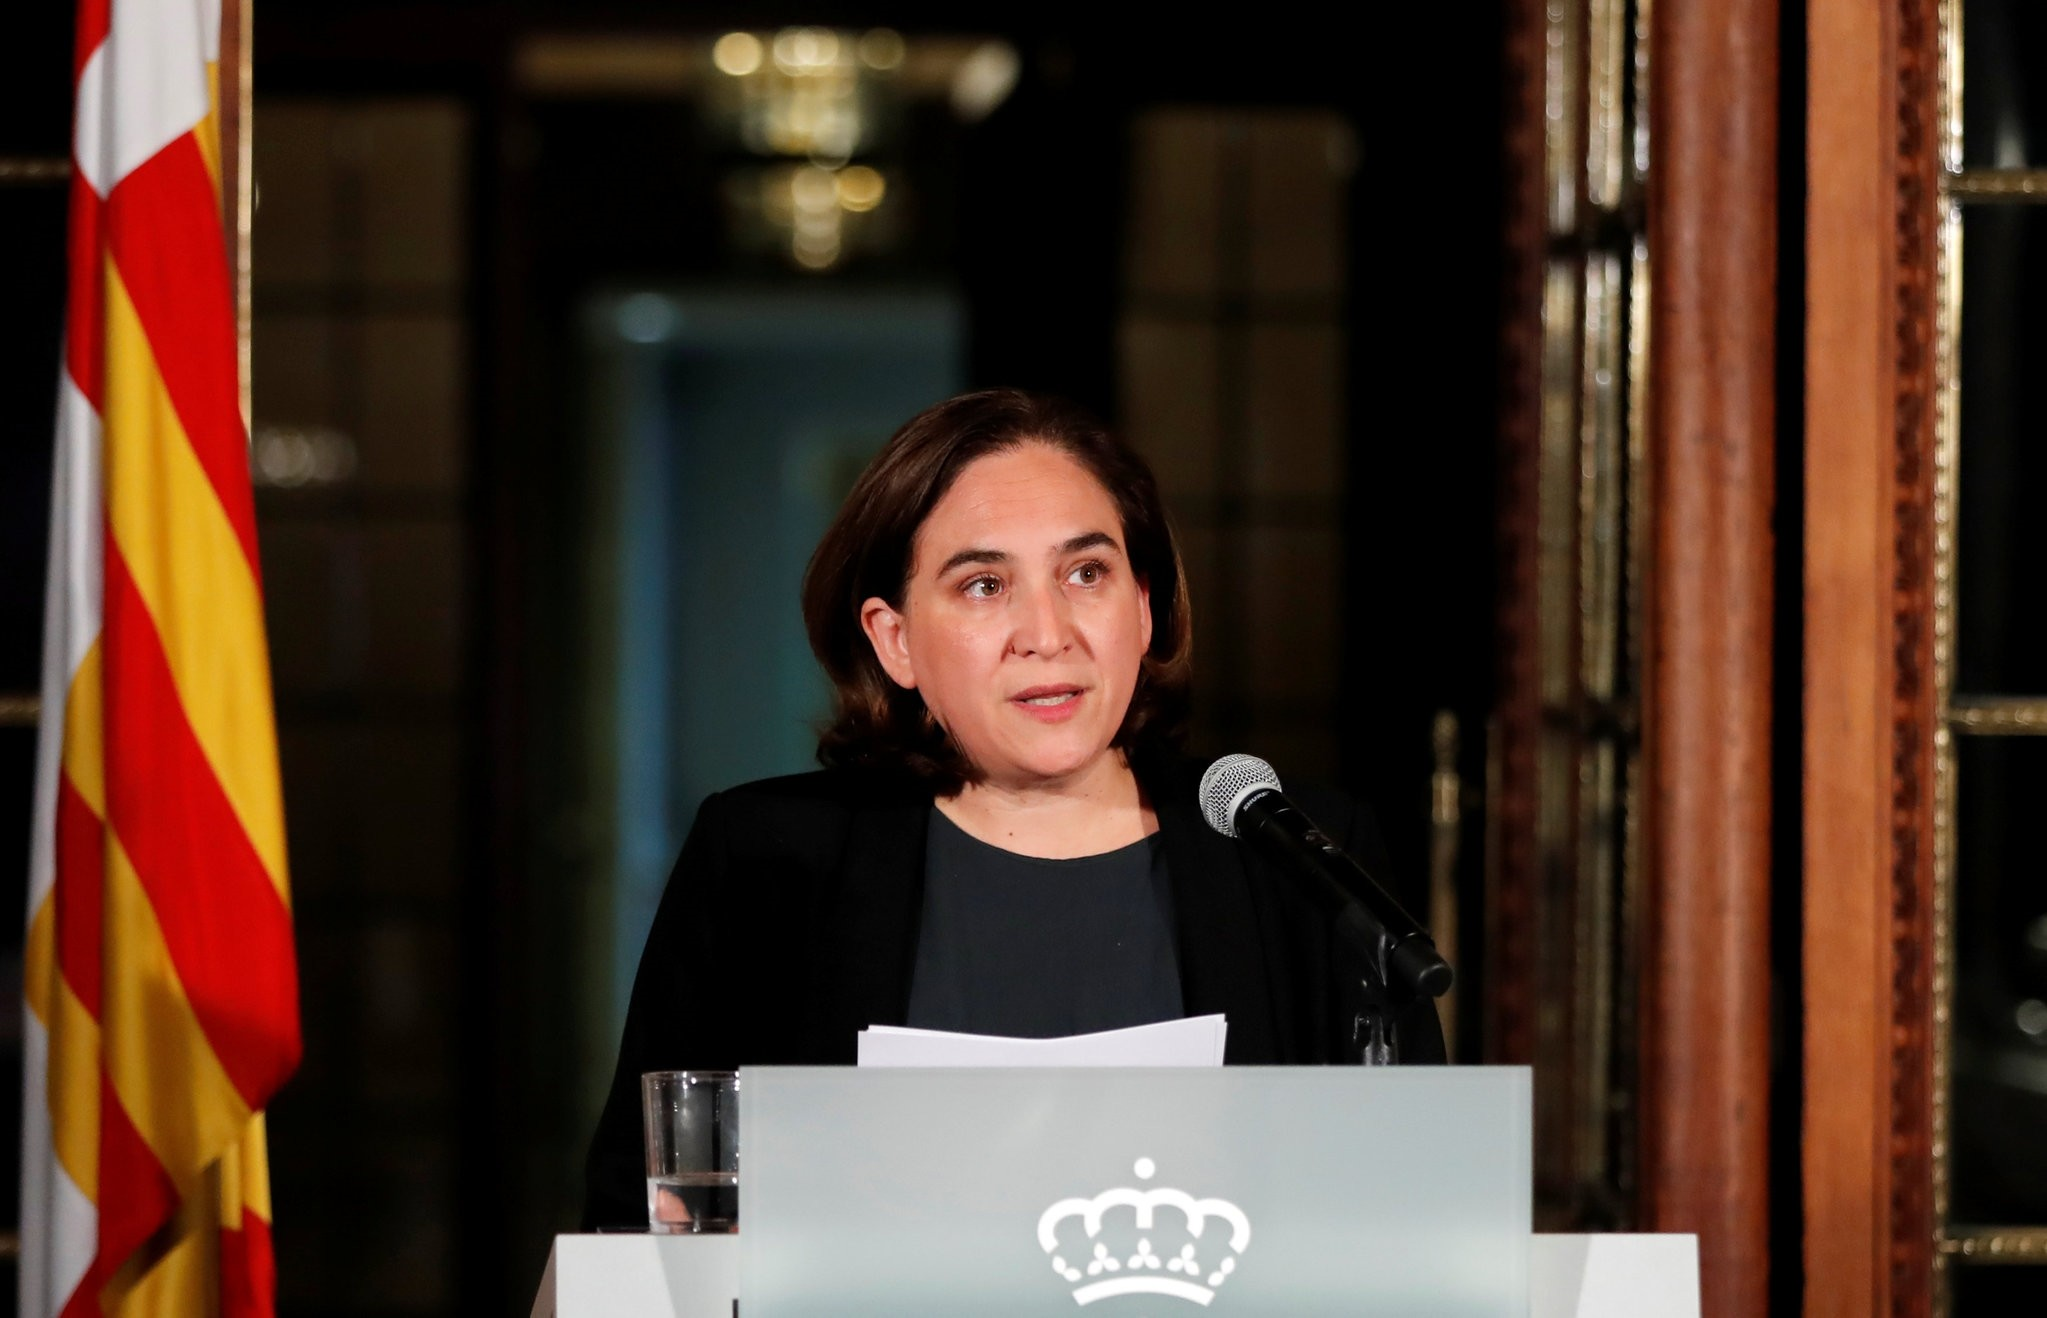 Ada Colau, the Mayor of Barcelona, issues a statement in Barcelona, Spain, October 9, 2017. (REUTERS Photo)